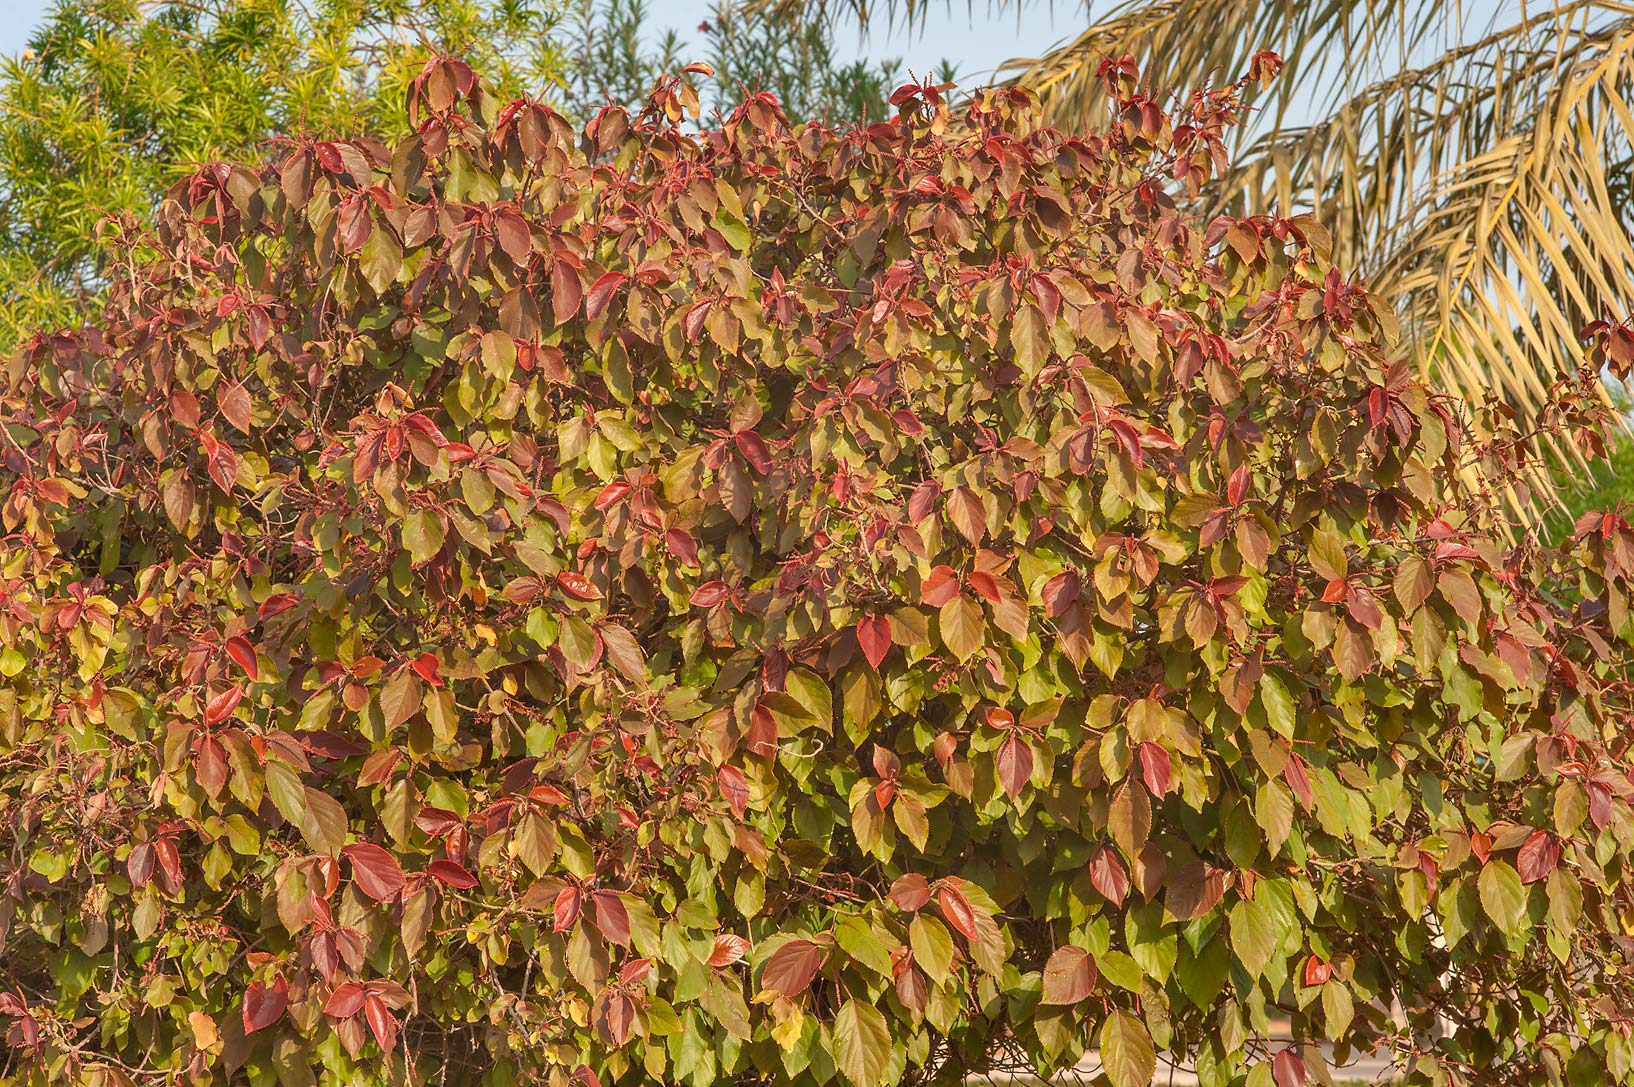 Acalypha wilkesiana plant with reddish leaves...City Park. Ruwais, Northern Qatar